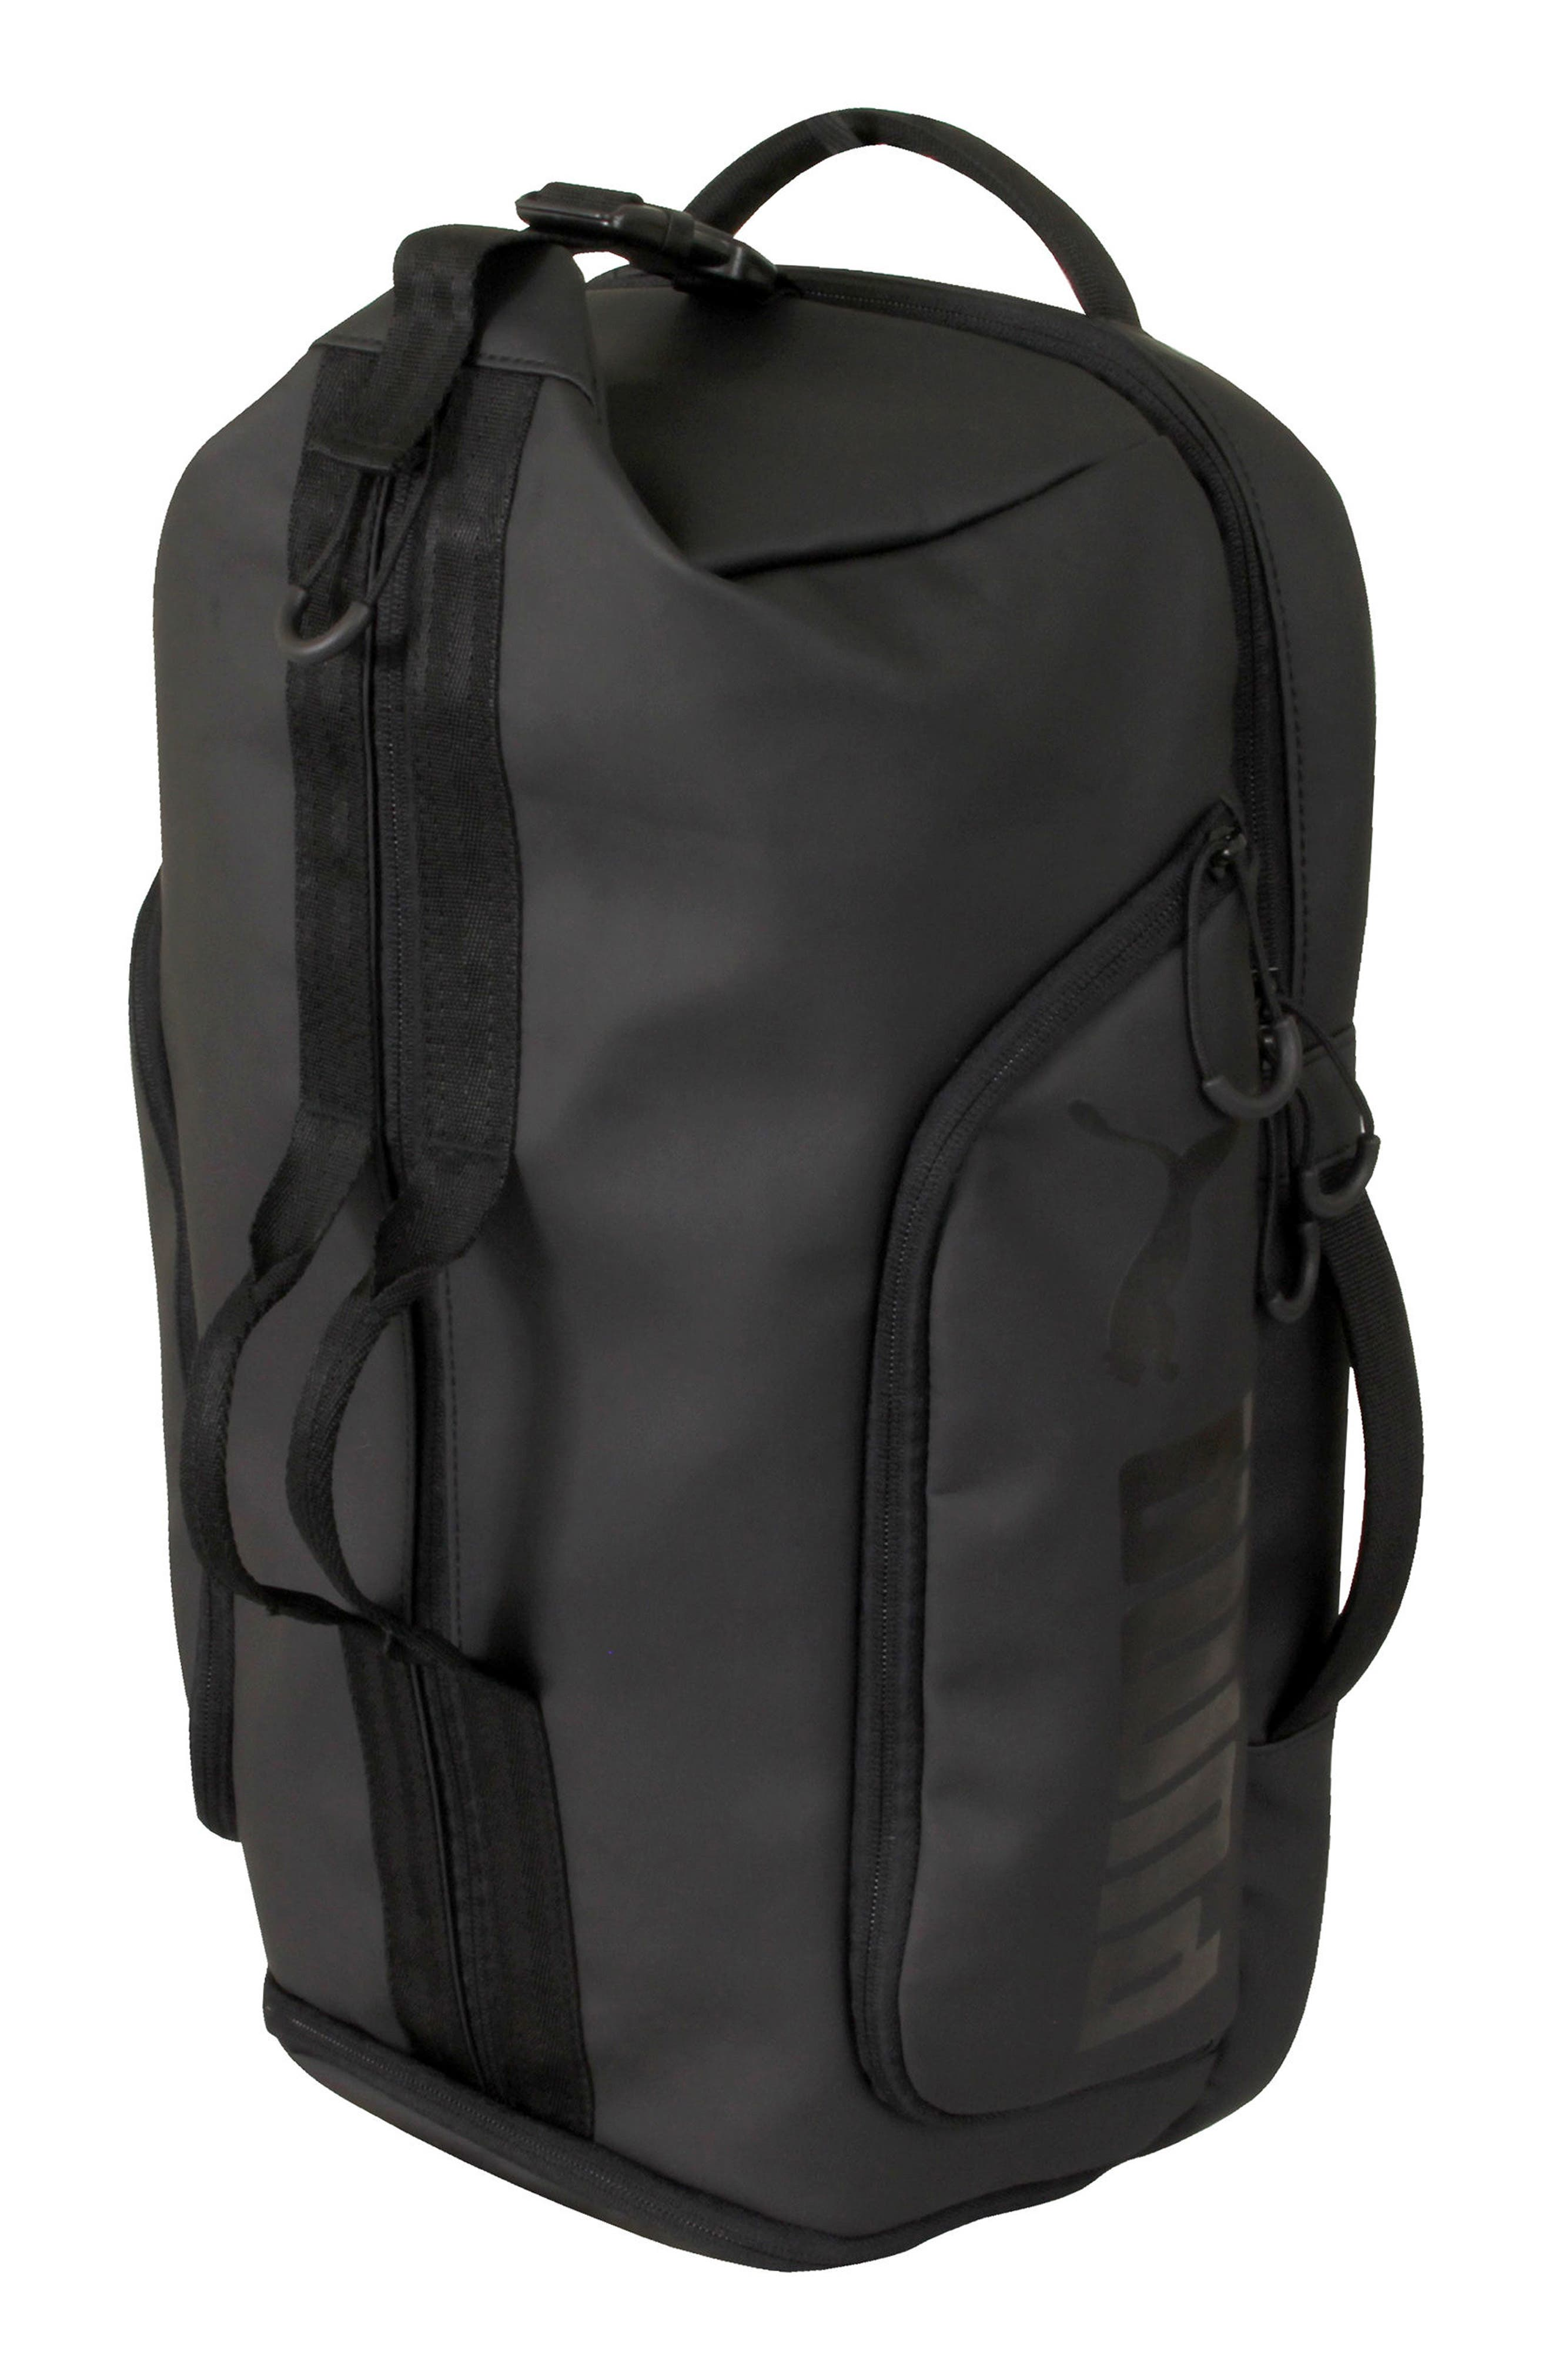 PUMA The Protocol Hybrid Duffel Backpack